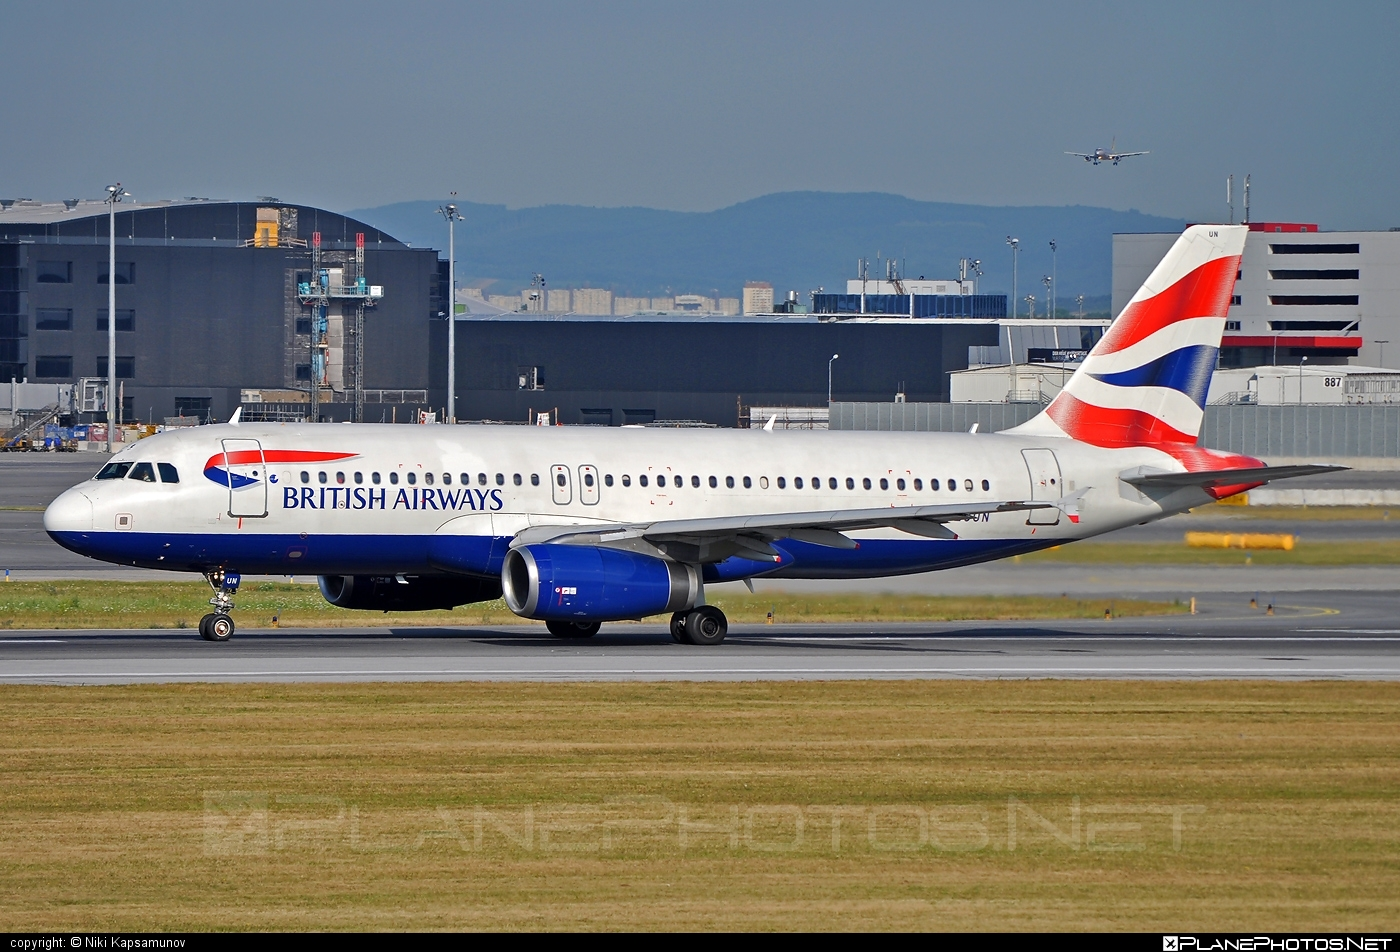 Airbus A320-232 - G-EUUN operated by British Airways #a320 #a320family #airbus #airbus320 #britishairways